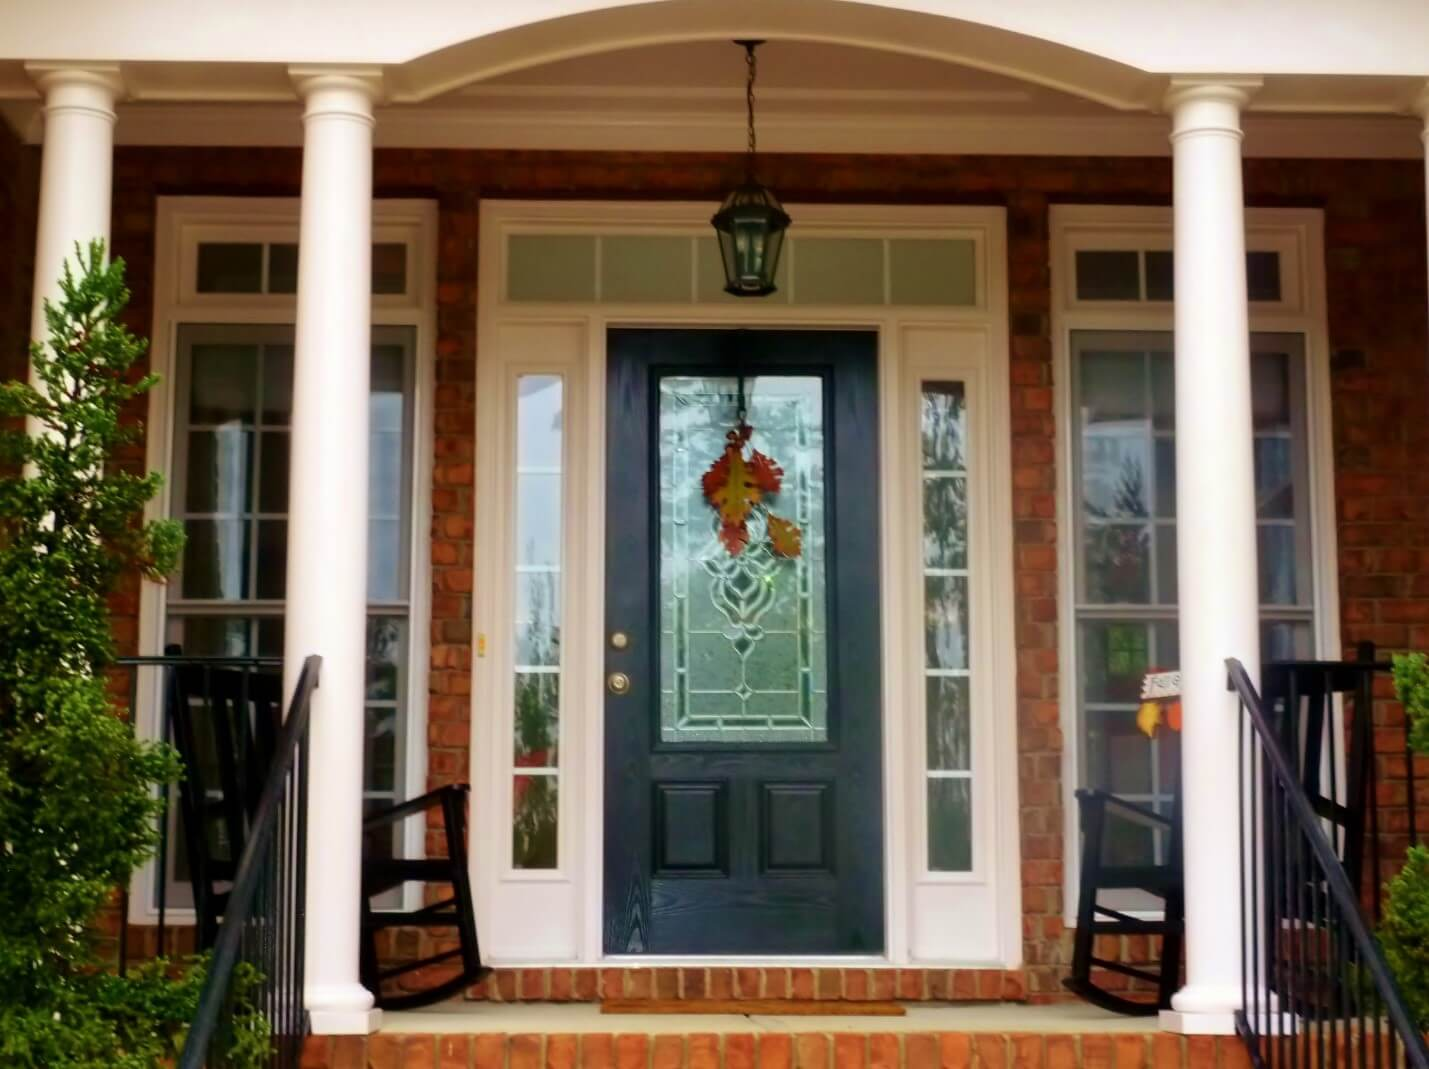 New Front Door Replacement With Windows In Lancaster,PA